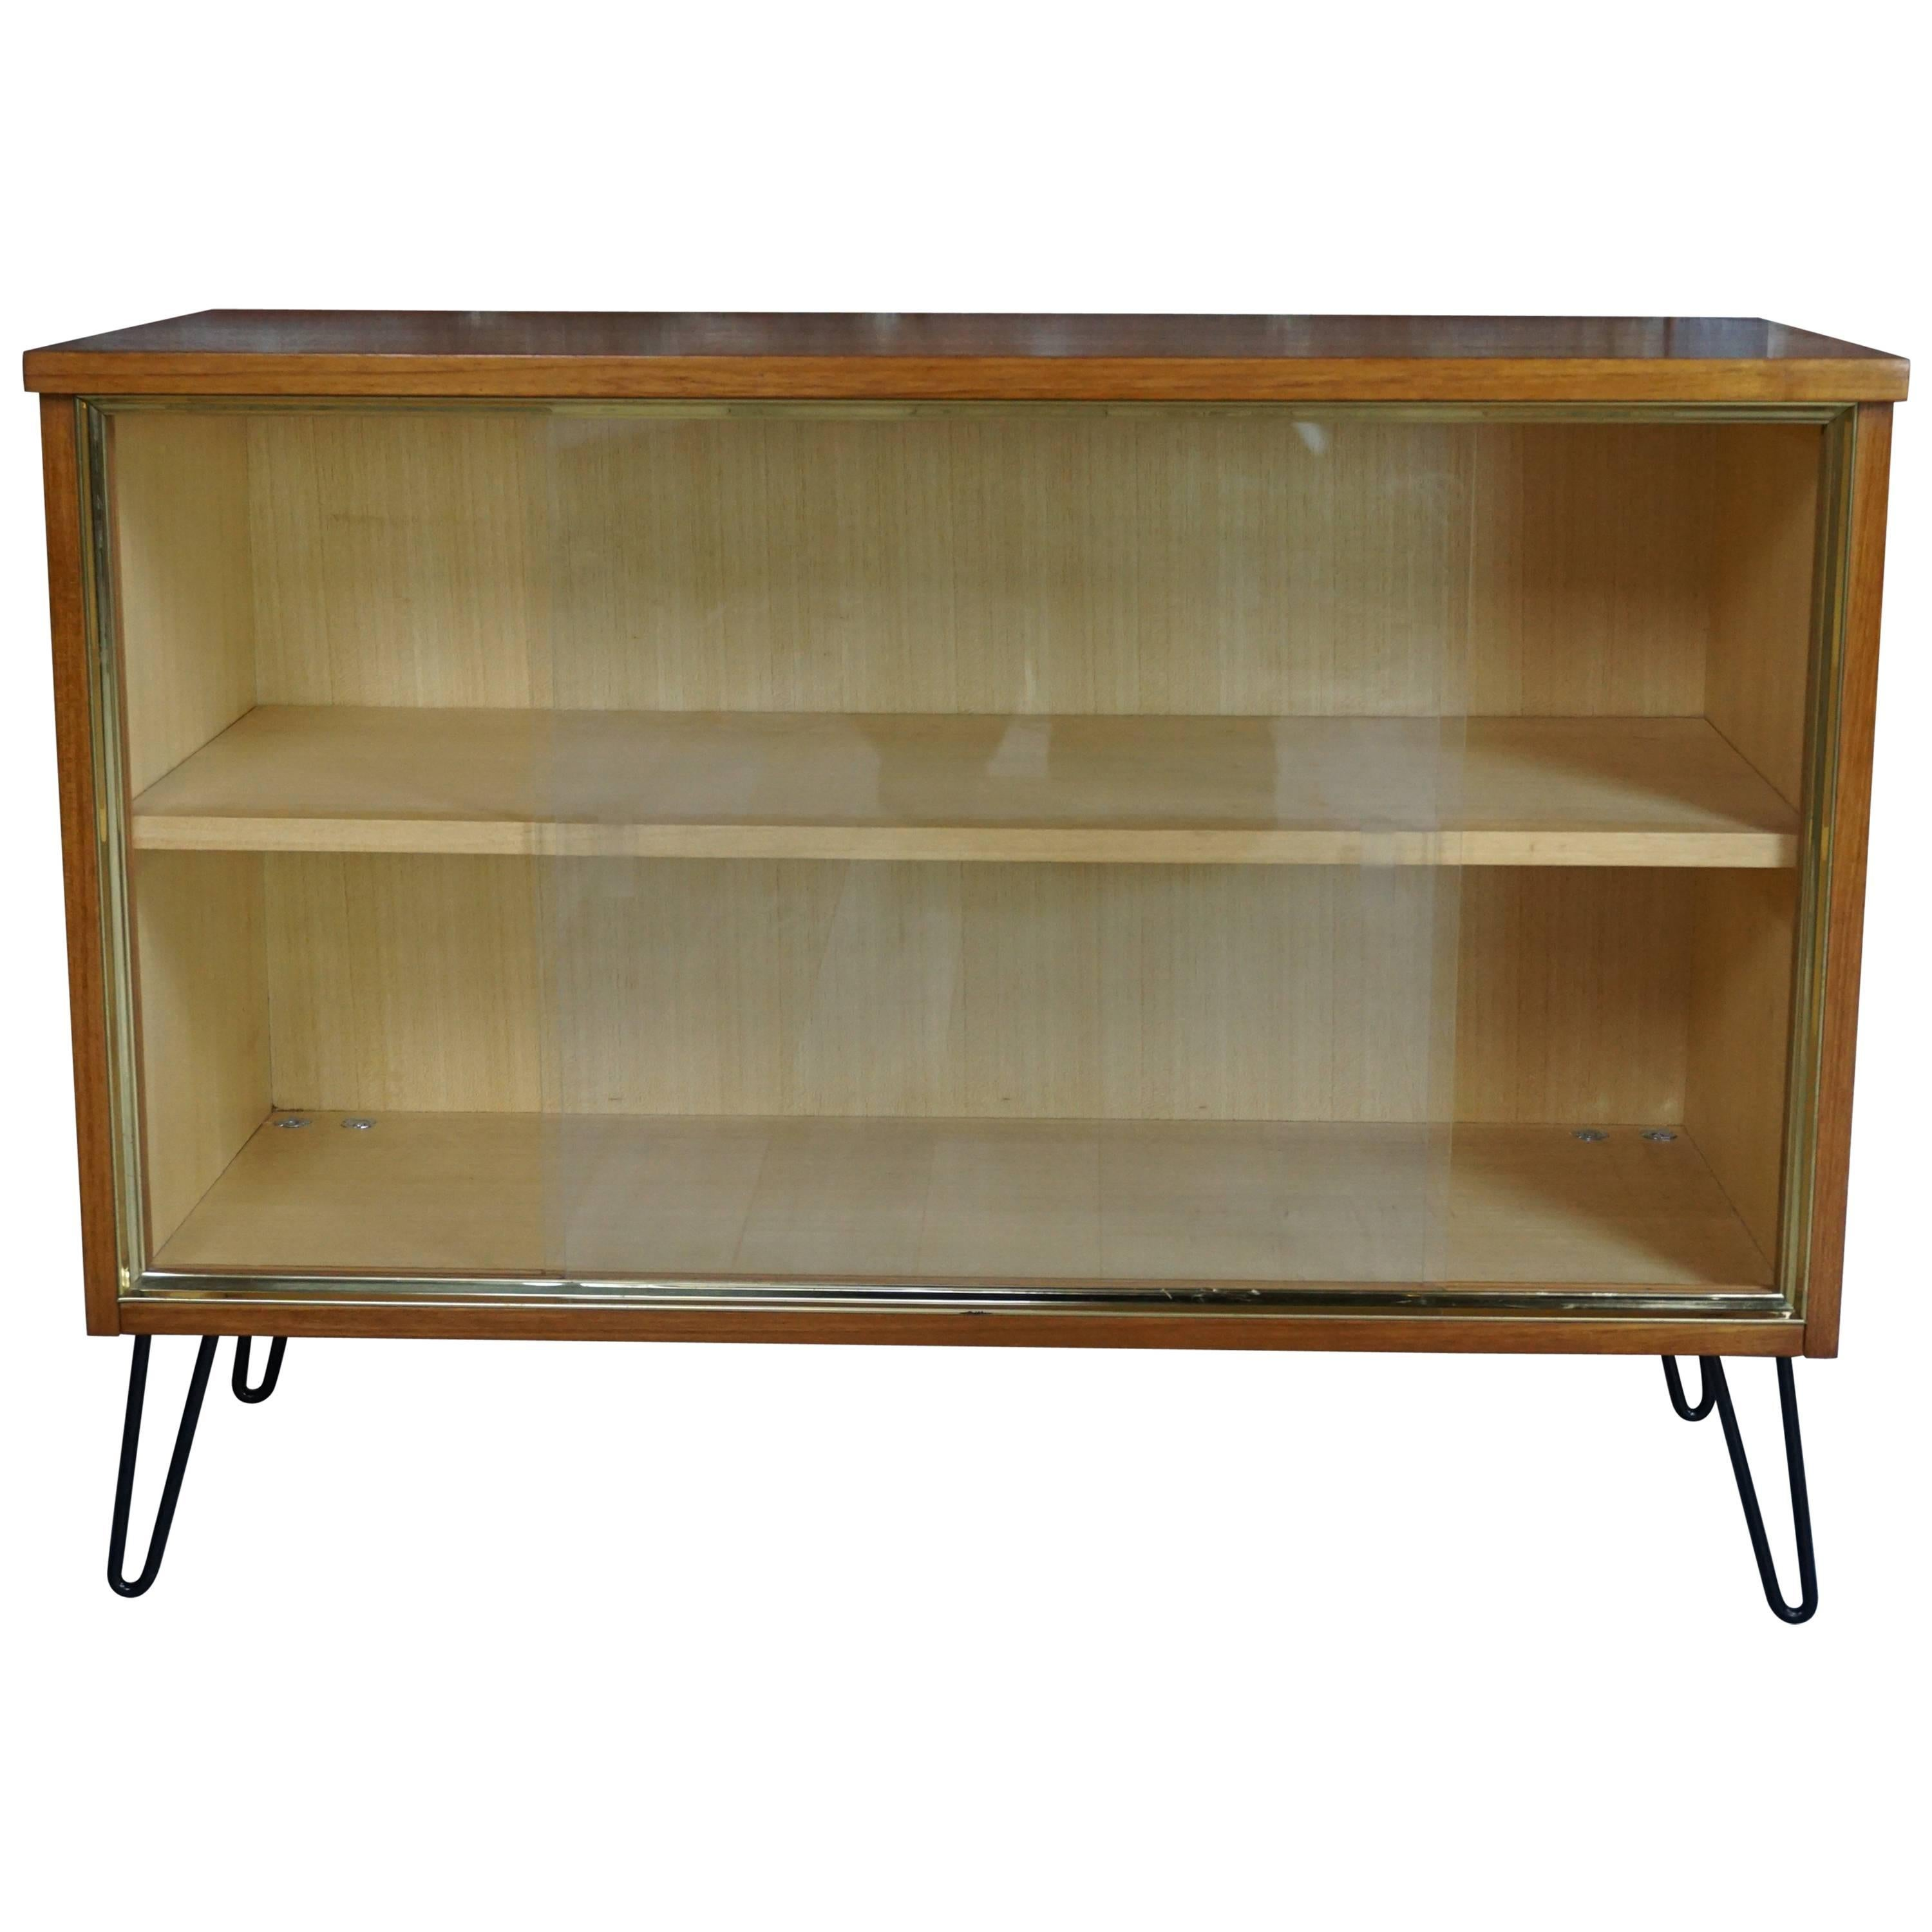 1950s teak and glass display case cabinet